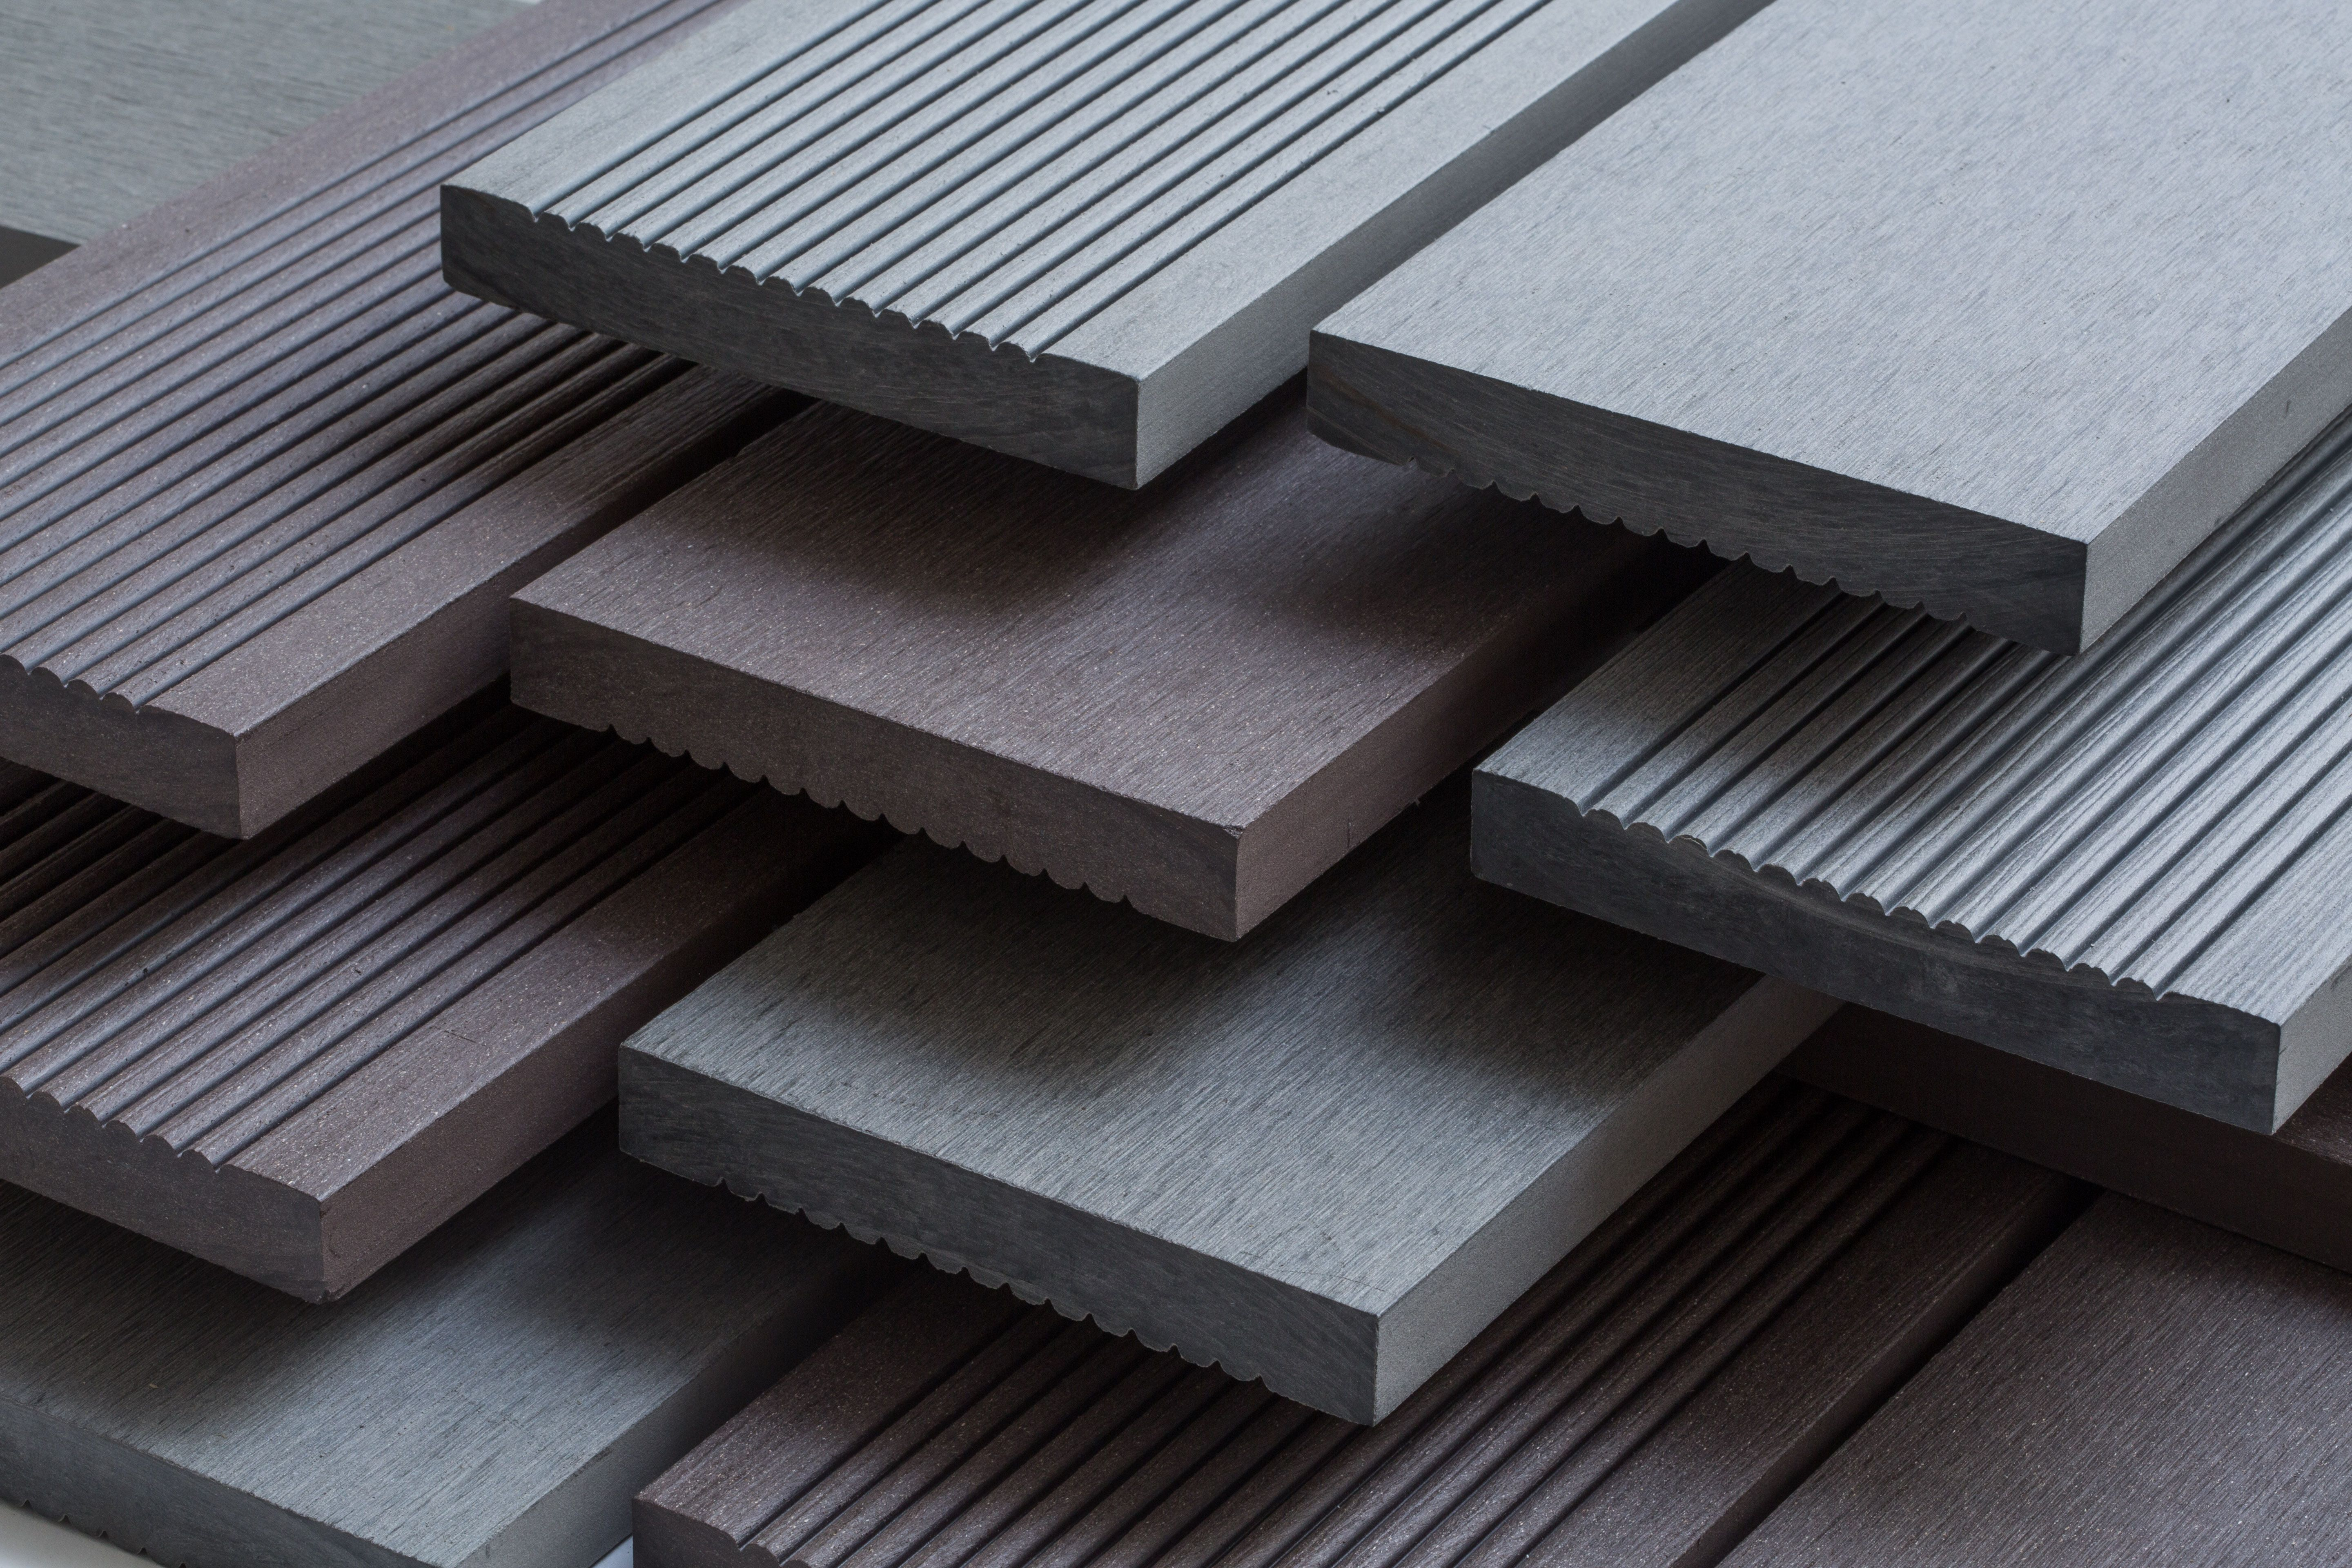 Exciting news we now stock smartboard composite decking